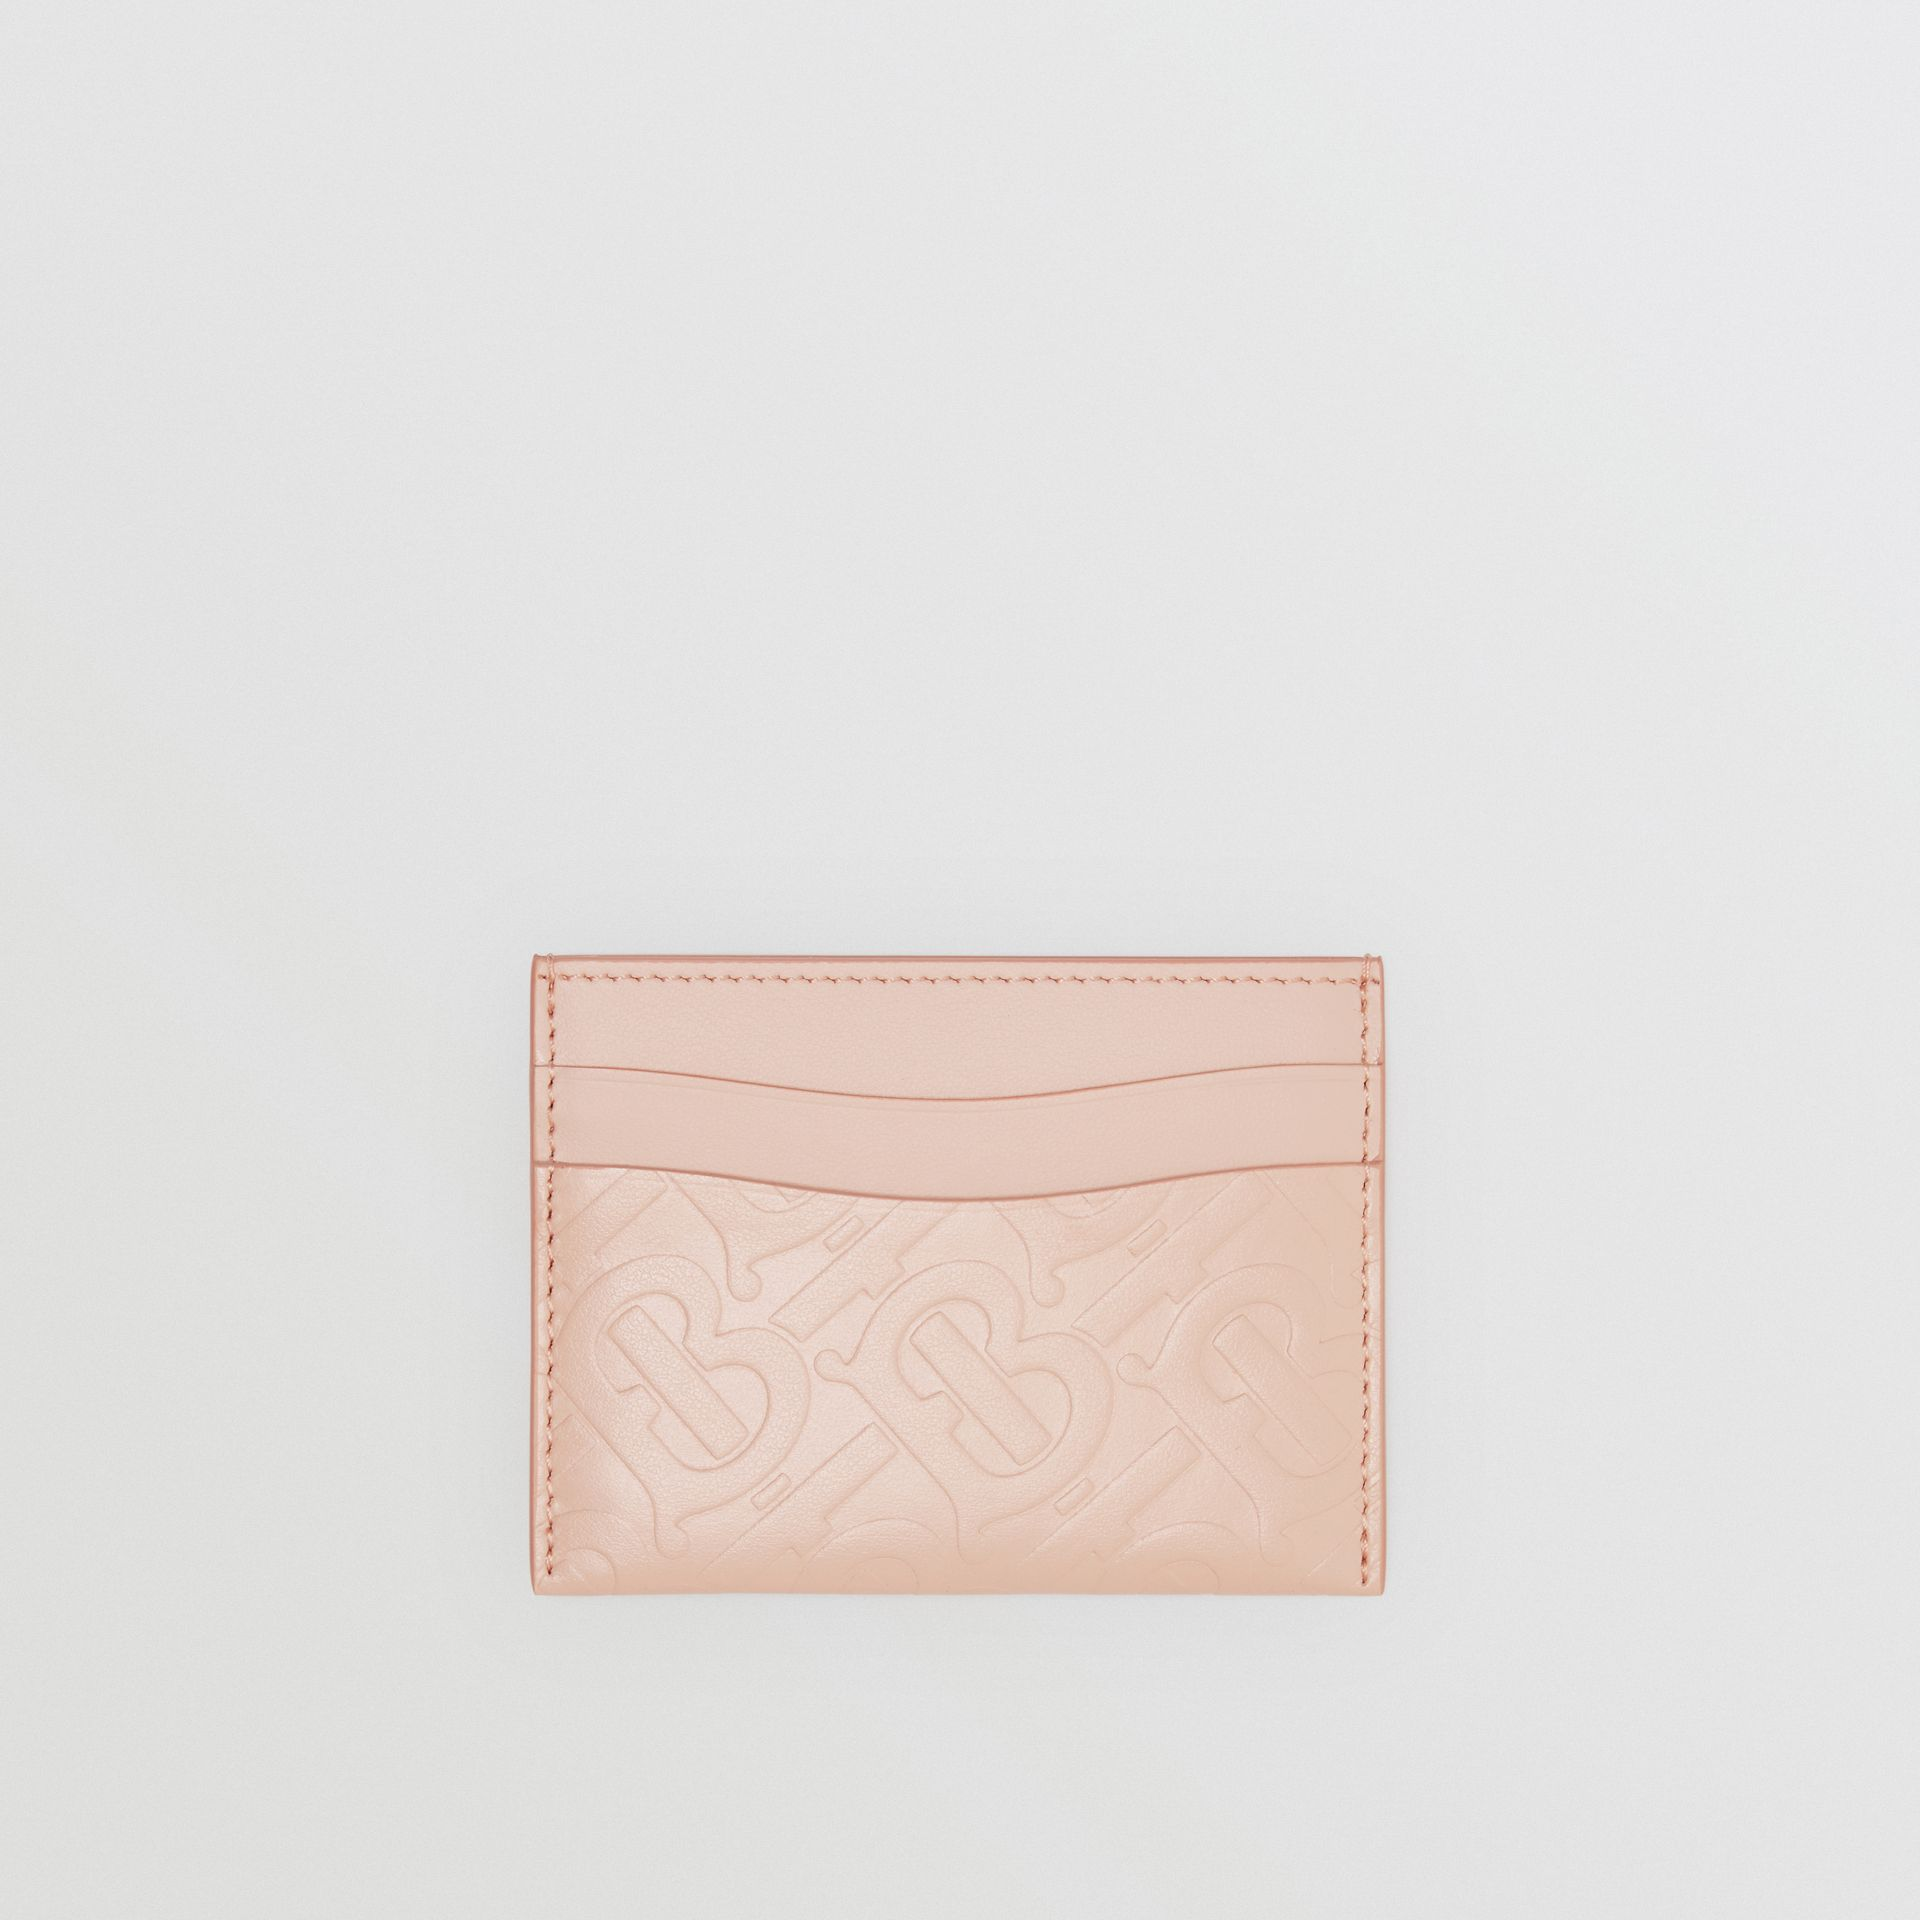 Monogram Leather Card Case in Rose Beige - Women | Burberry Canada - gallery image 0